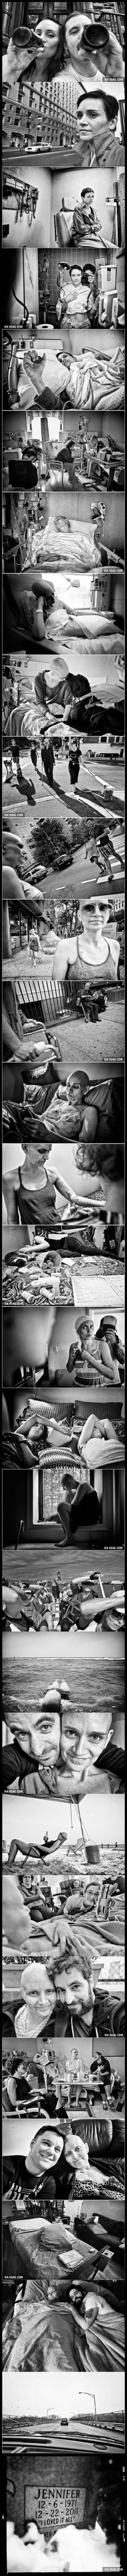 A man's wife was diagnosed with cancer, so he photographed the entire battle in unforgettable pictures. A reminder that cancer is more than an awareness ribbon...